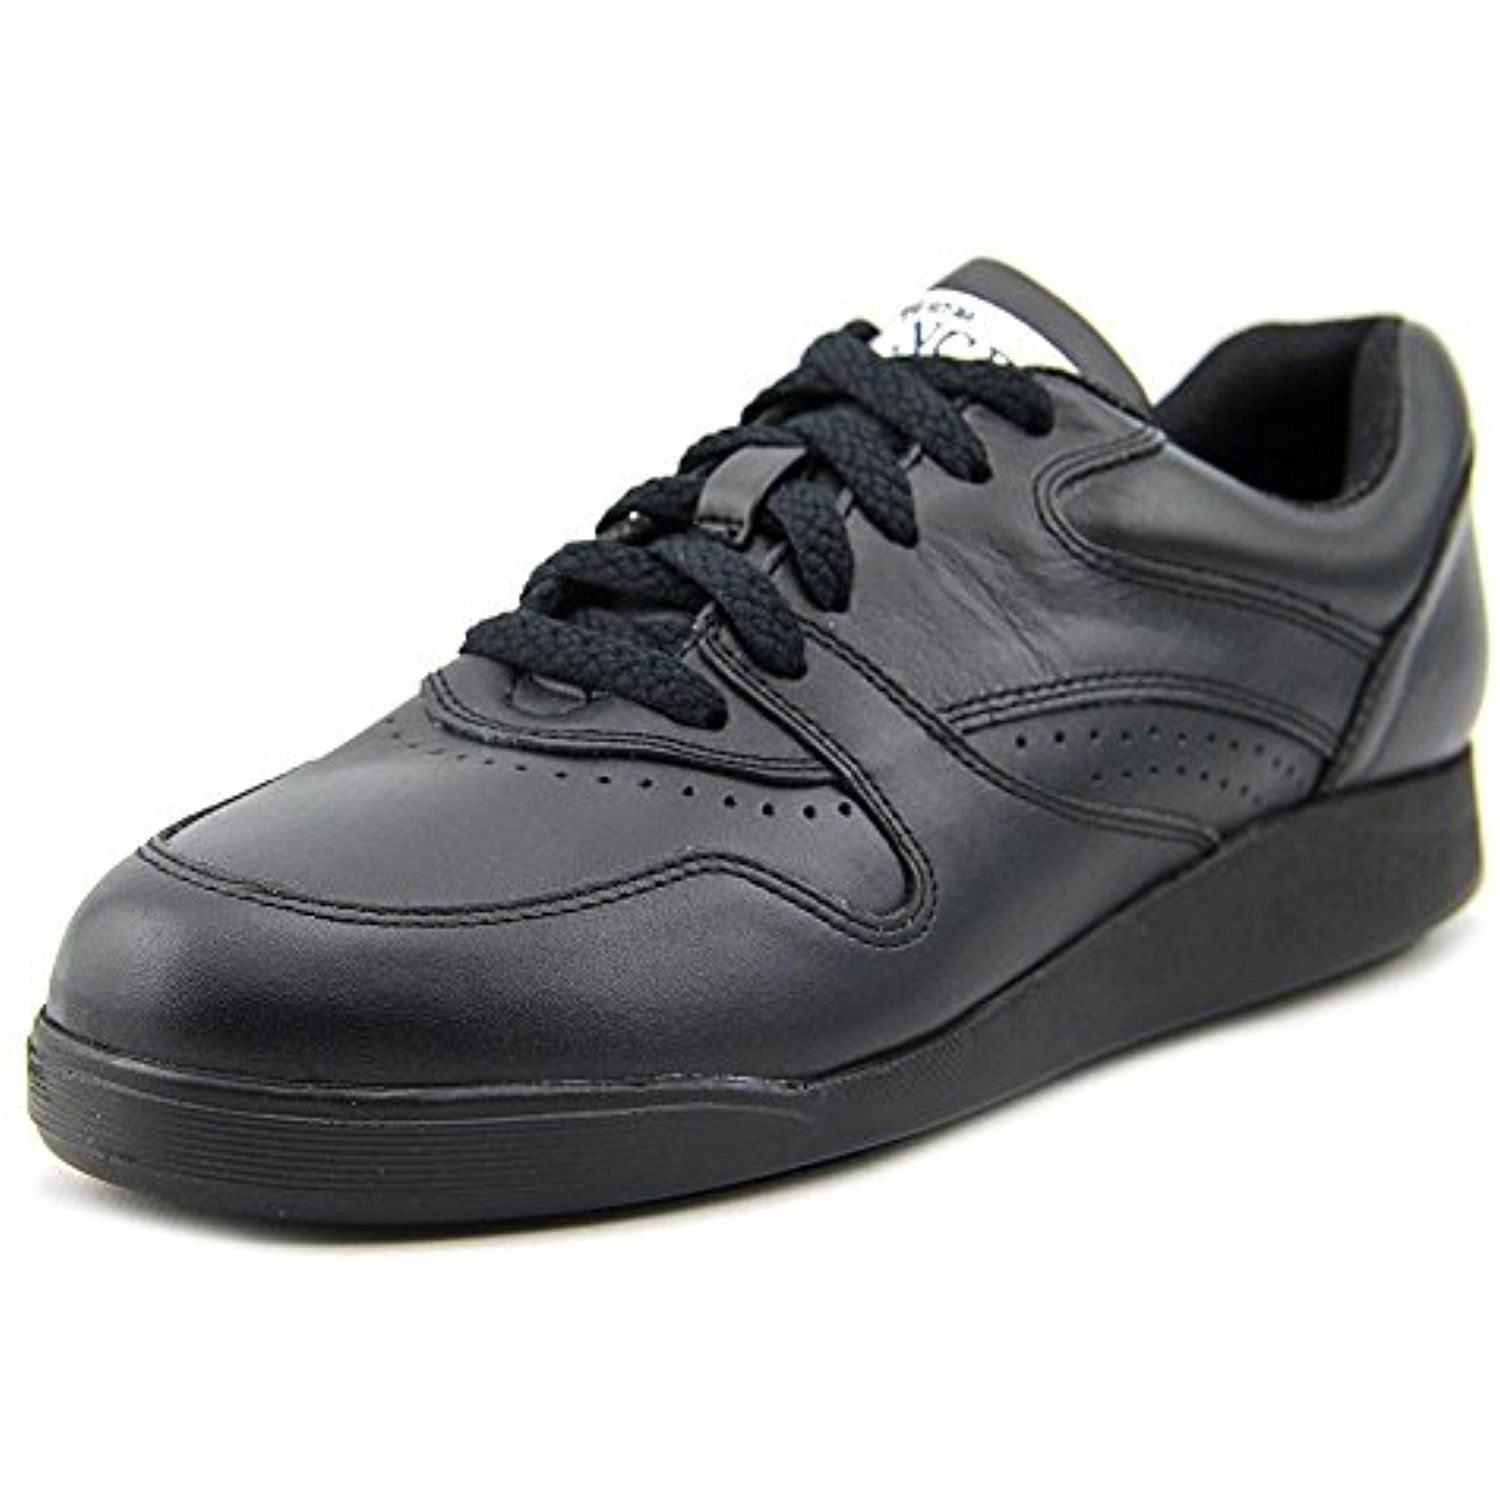 Women's Upbeat Sneaker,Black (10, Black) ** Check out this